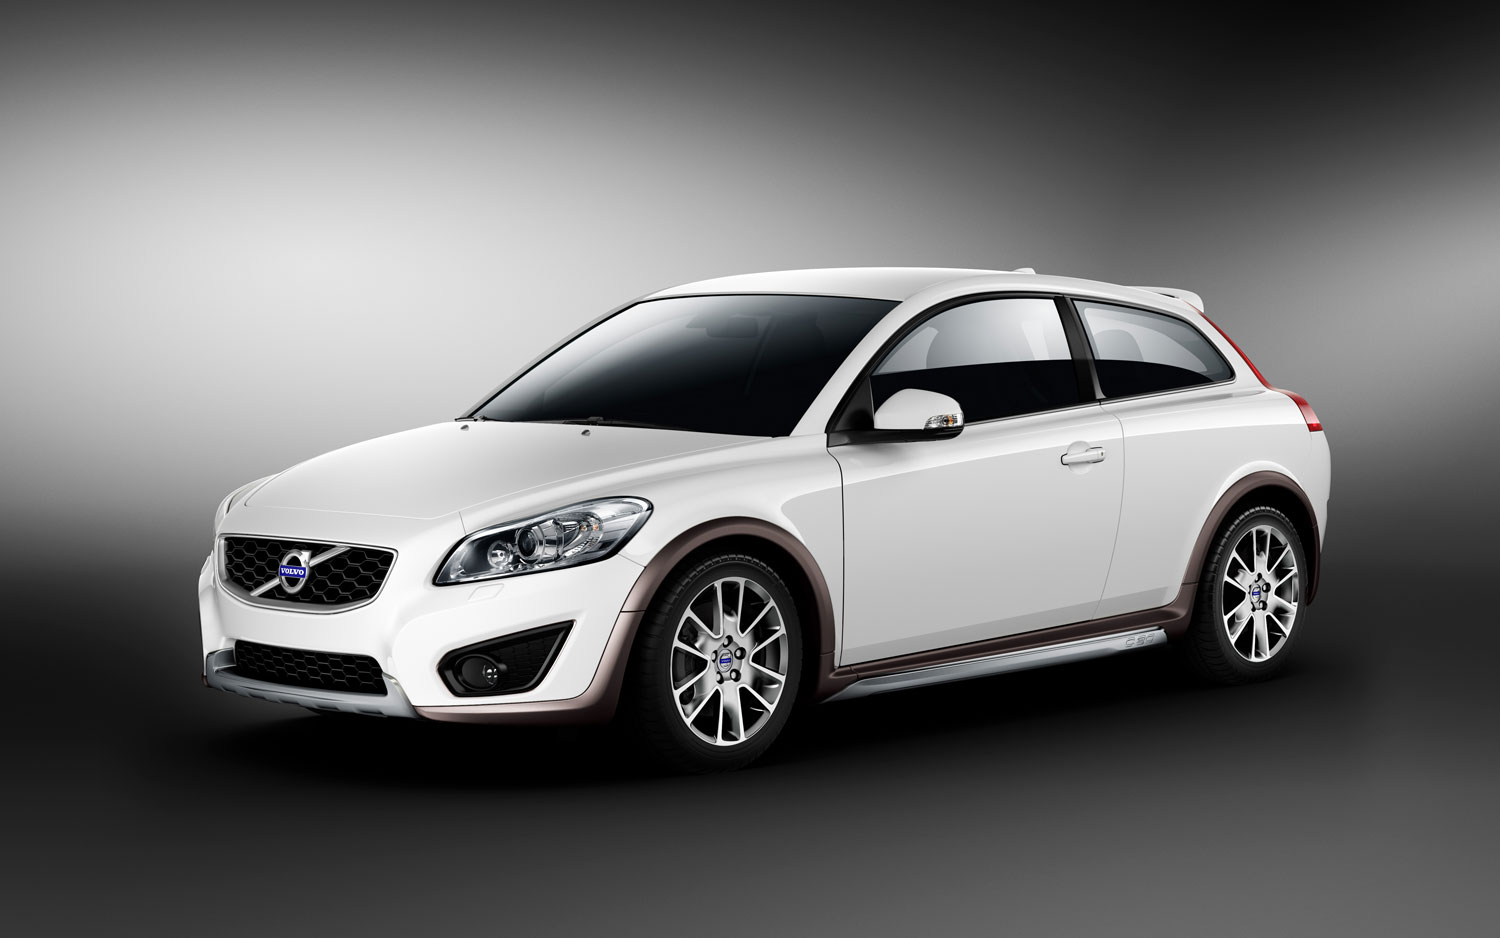 Volvo Announces Polestar Tuning Kits Available for C30, C70, S40